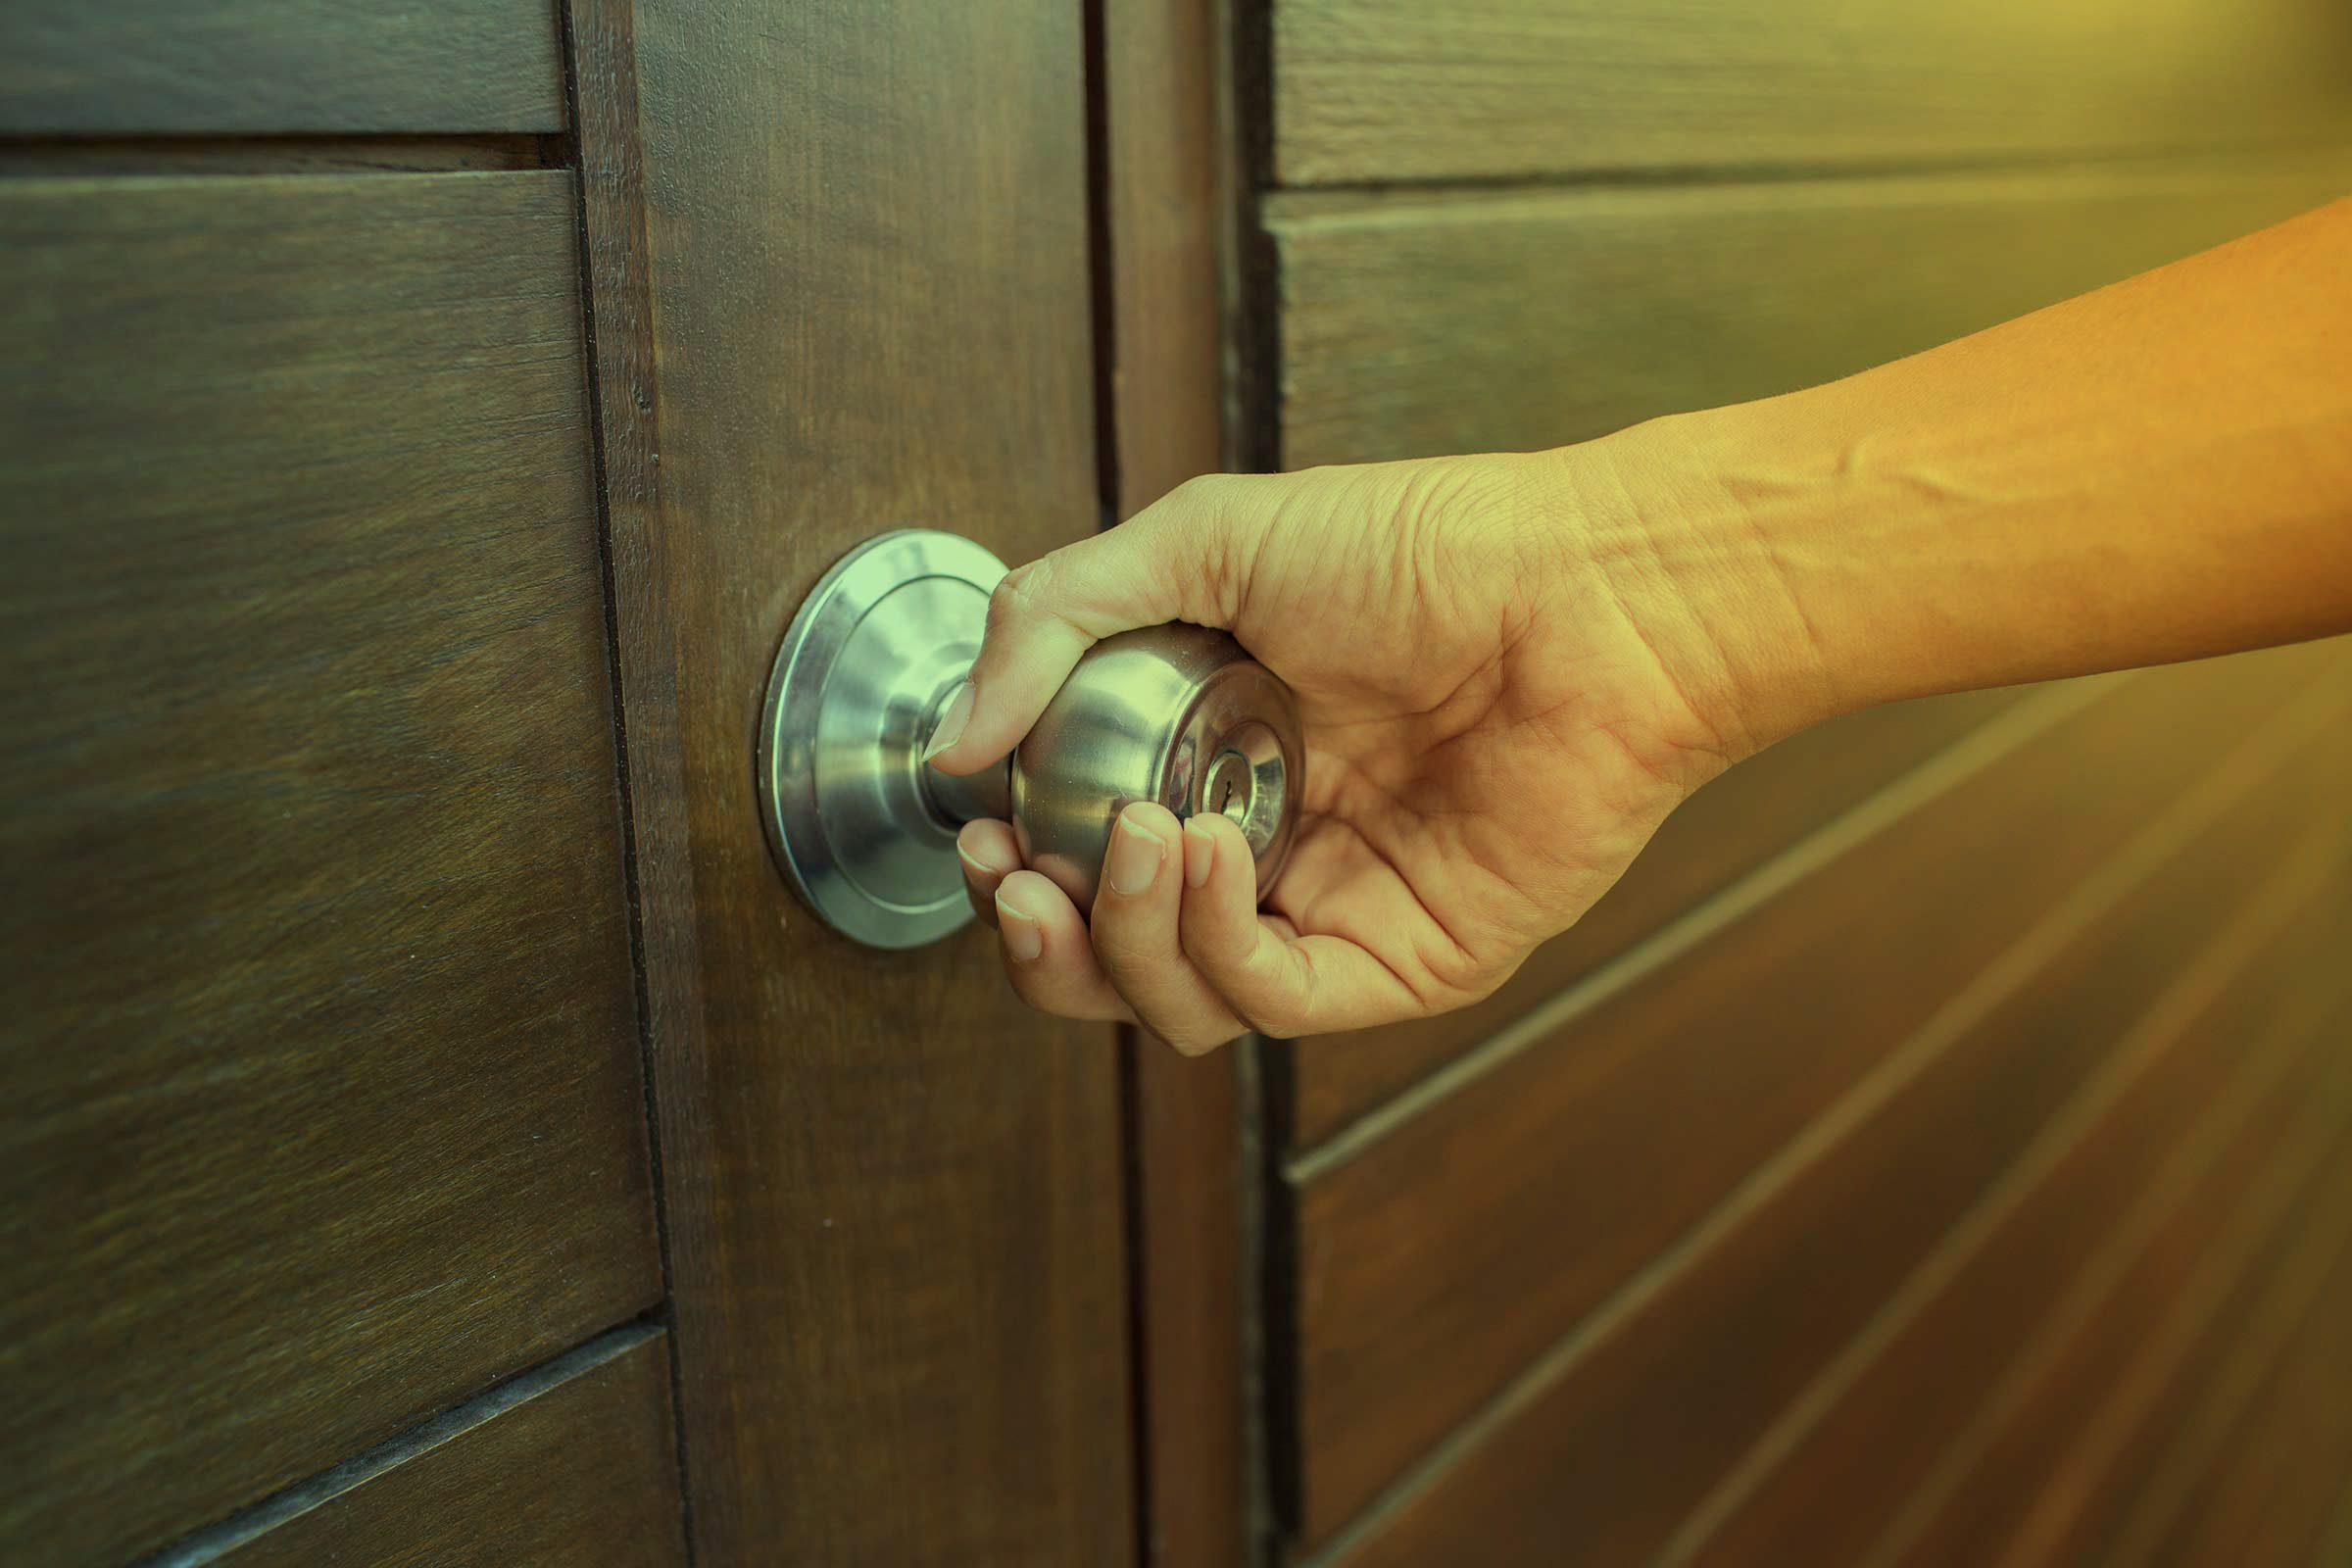 House locksmith secrets that pros wont tell you readers digest try the door rubansaba